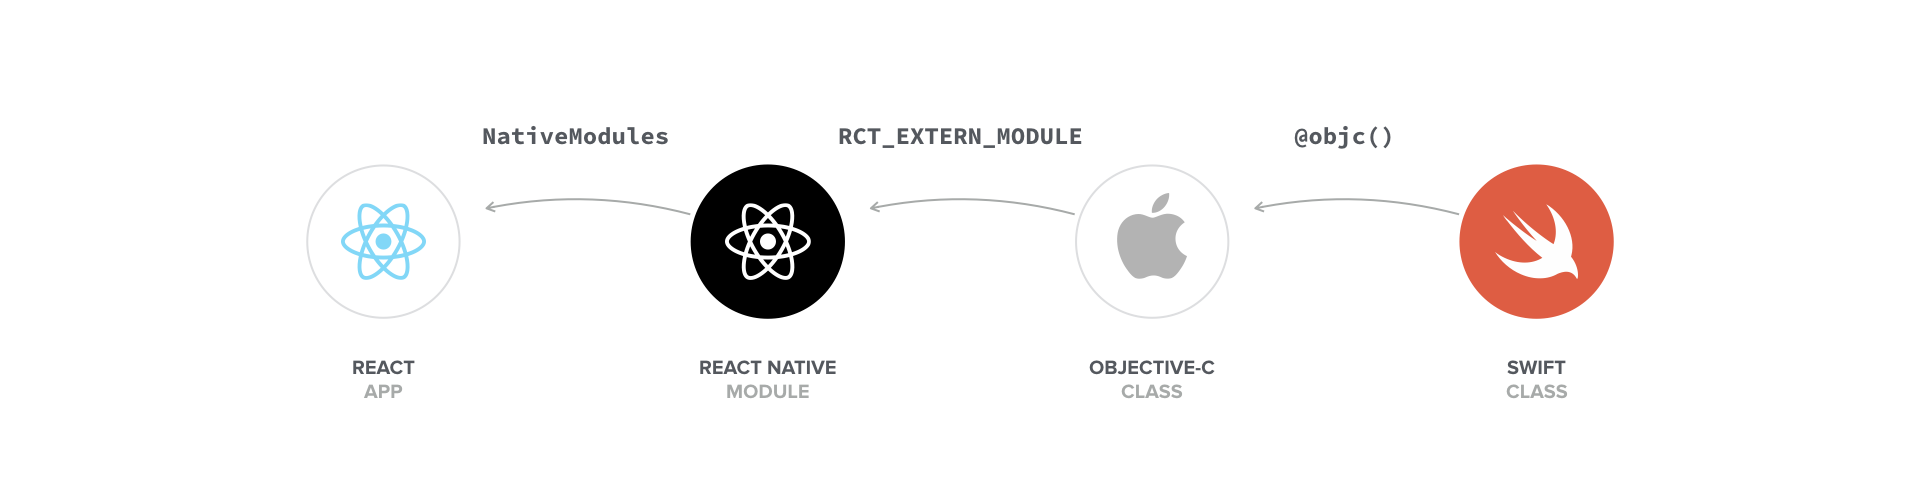 Swift in React Native - The Ultimate Guide Part 1: Modules